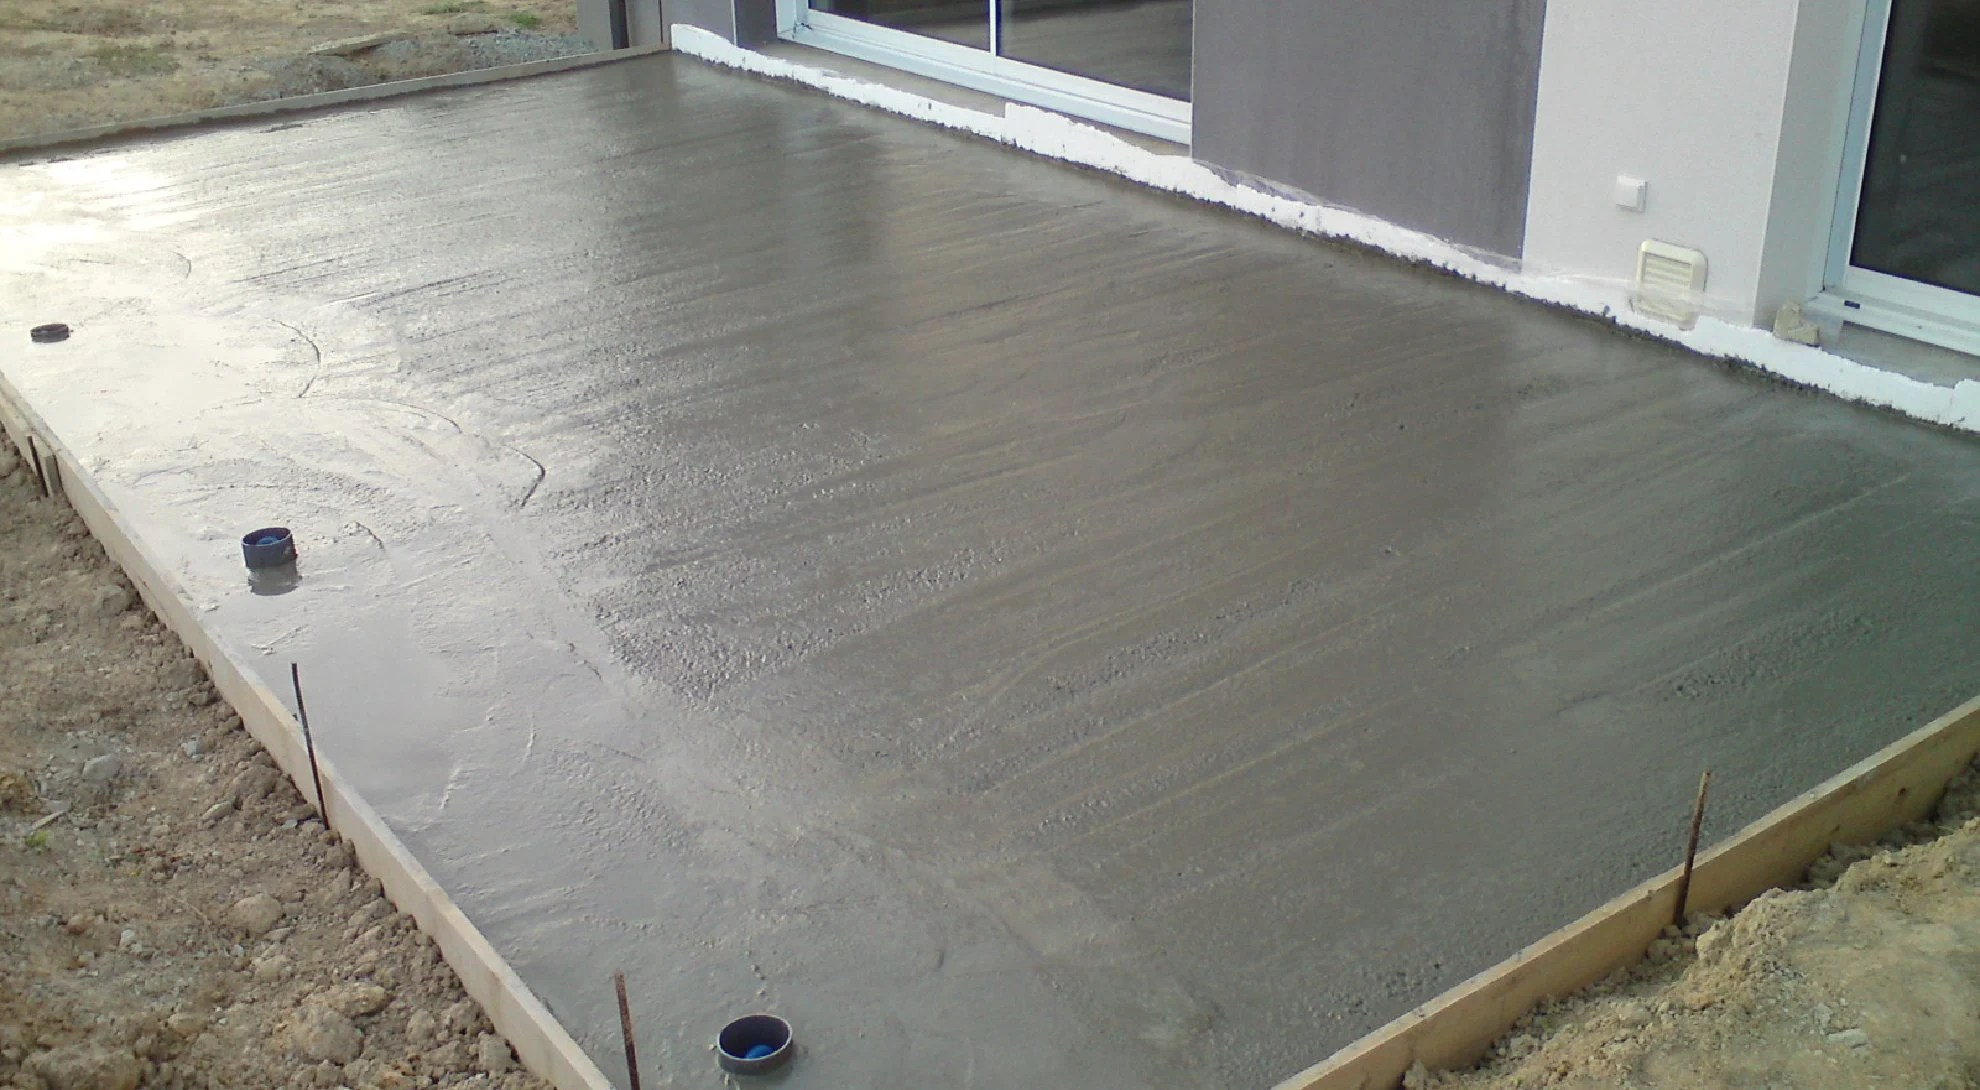 Dalle Beton Terrasse Joint De Dilatation Coffrage Terrasse Comment S Y Prendre